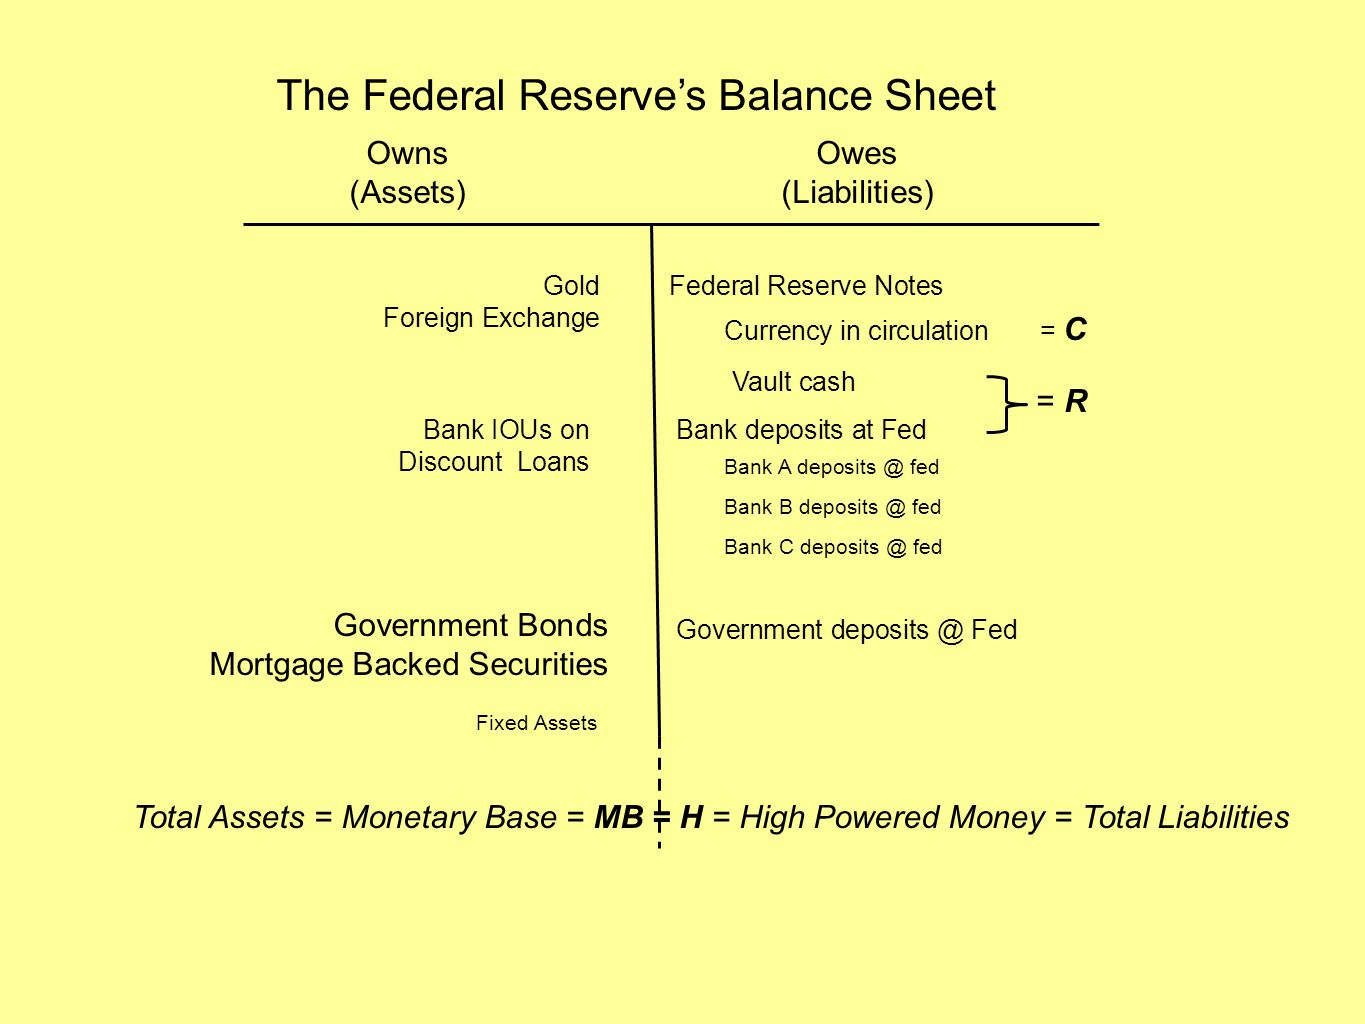 The Federal Reserve's Balance Sheet Owns (Assets) Owes (Liabilities) Federal Reserve Notes Currency in circulation = C Vault cash Bank deposits at Fed = R Bank A deposits @ fed Bank B deposits @ fed Bank C deposits @ fed Government deposits @ Fed Gold Foreign Exchange Bank IOUs on Discount Loans Government Bonds Mortgage Backed Securities Fixed Assets Total Assets = Monetary Base = MB = H = High Powered Money = Total Liabilities